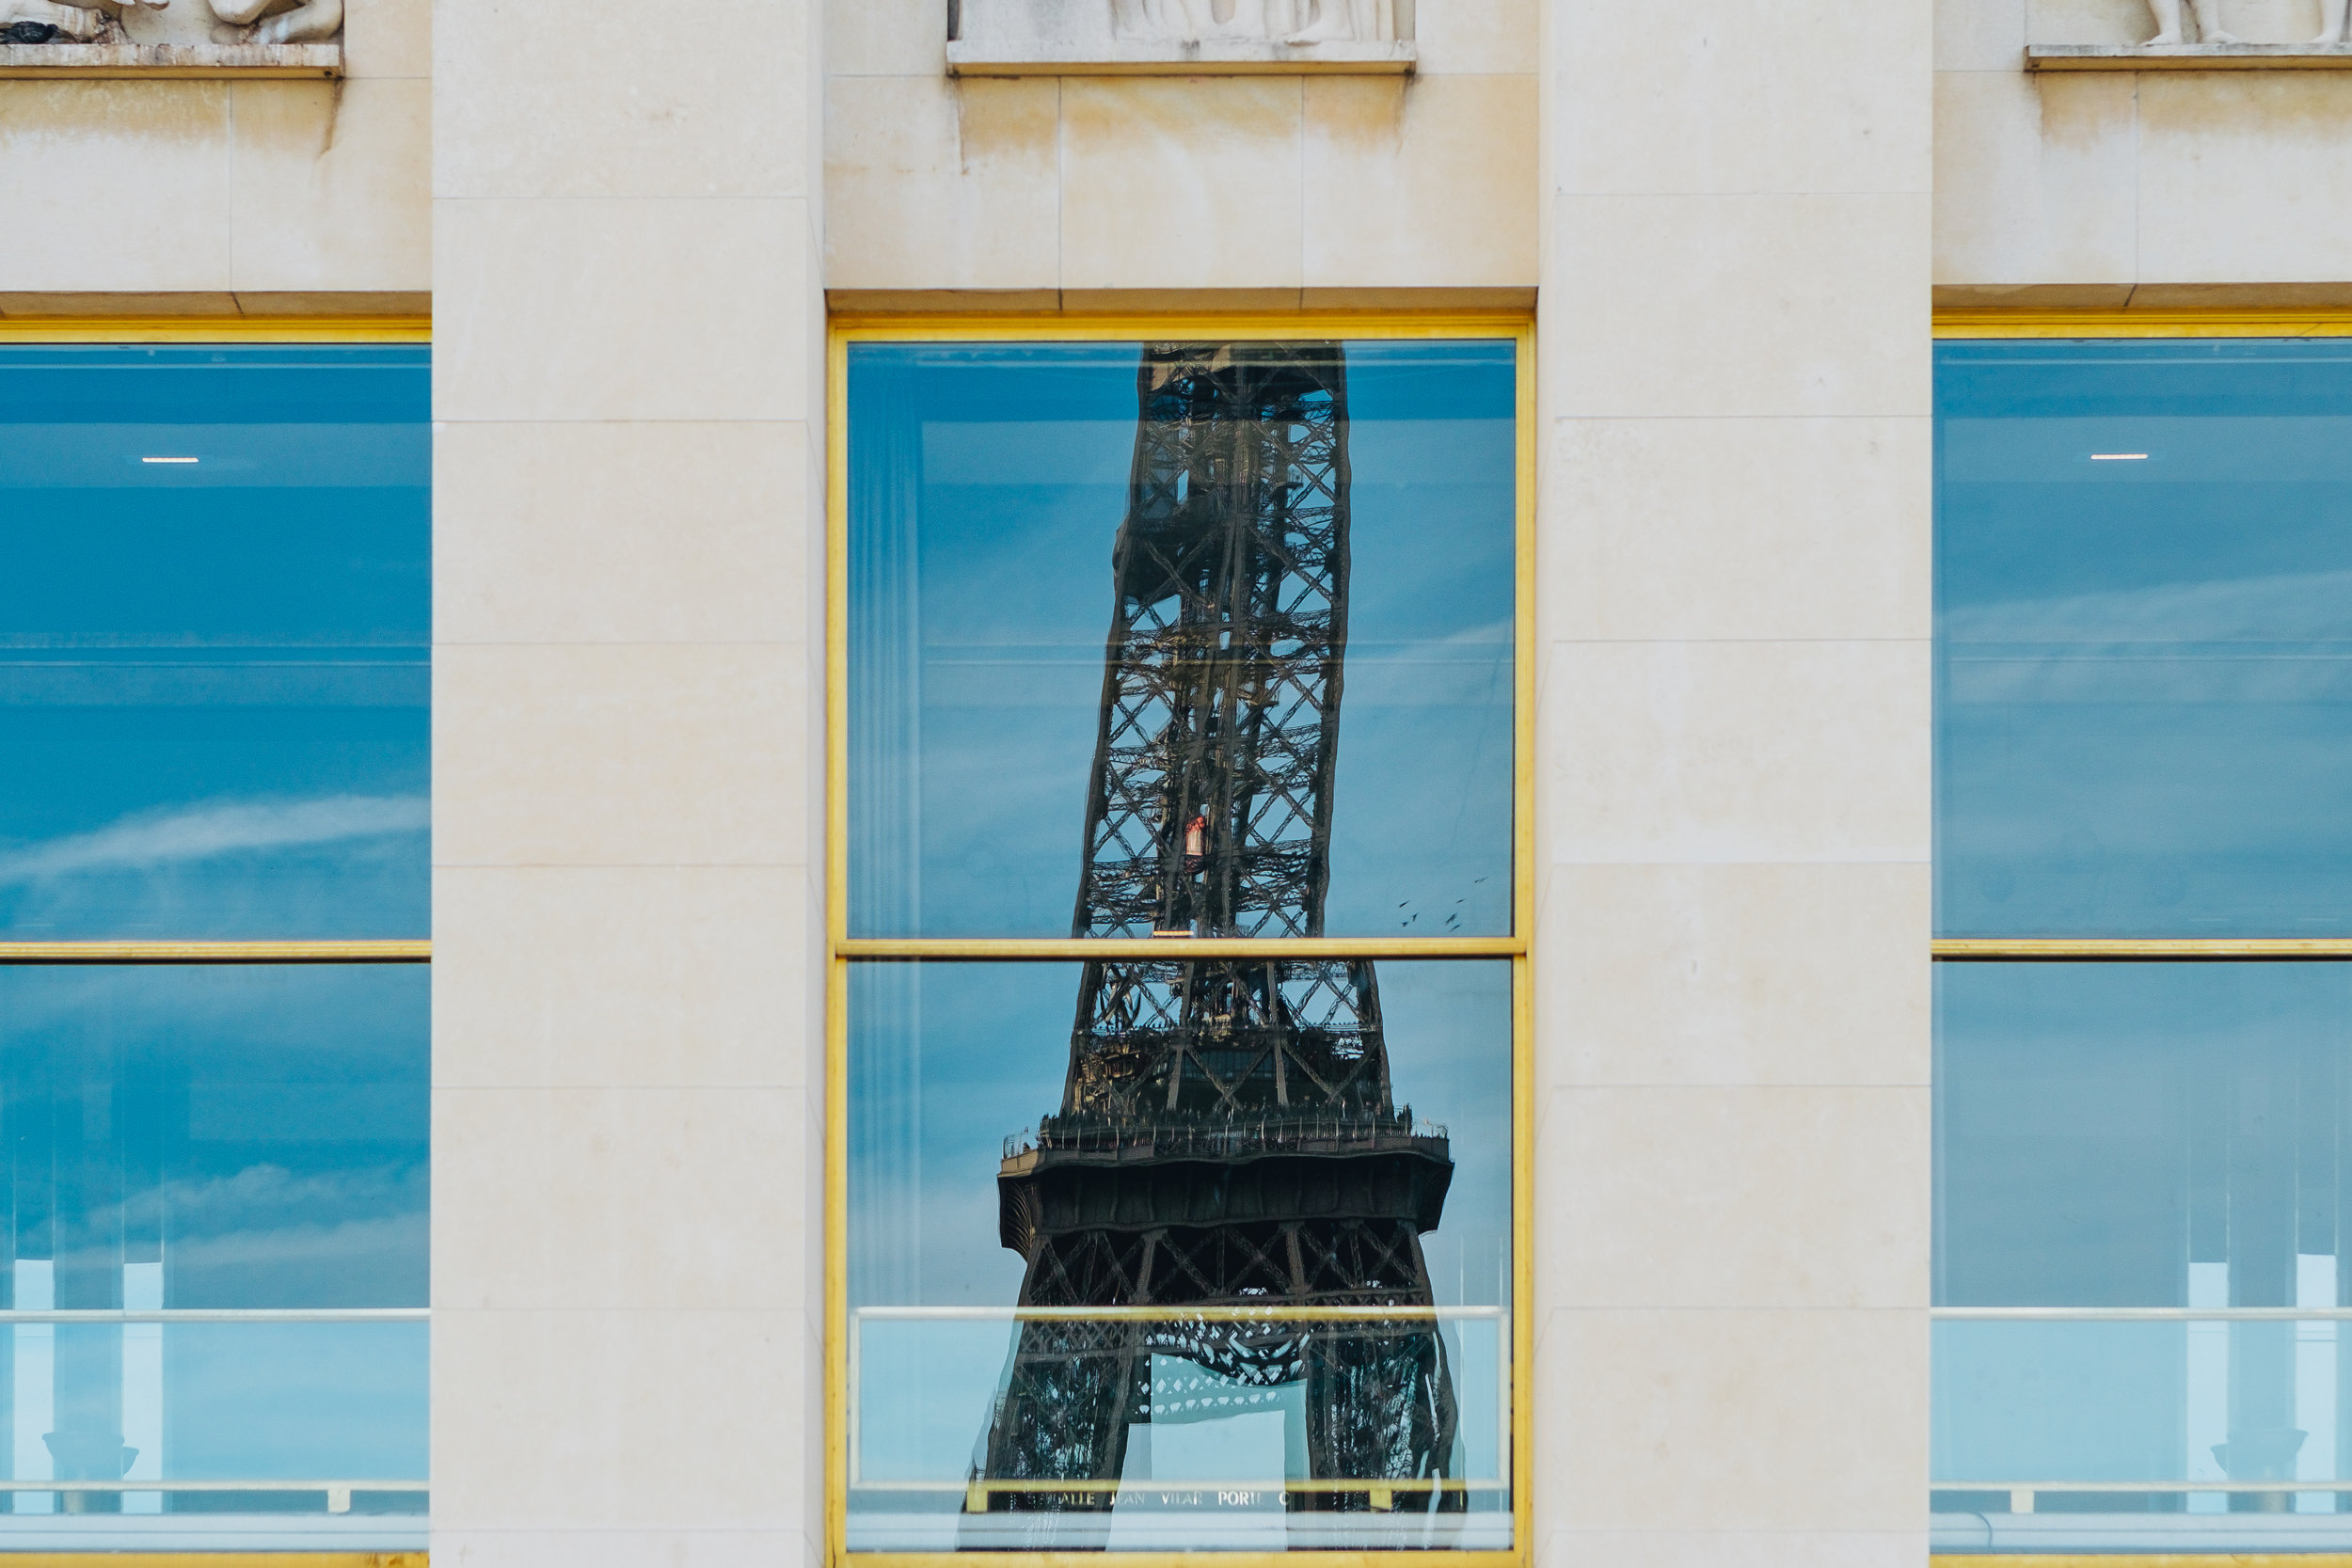 The Eiffel Tower as seen in the reflection of the Trocadero